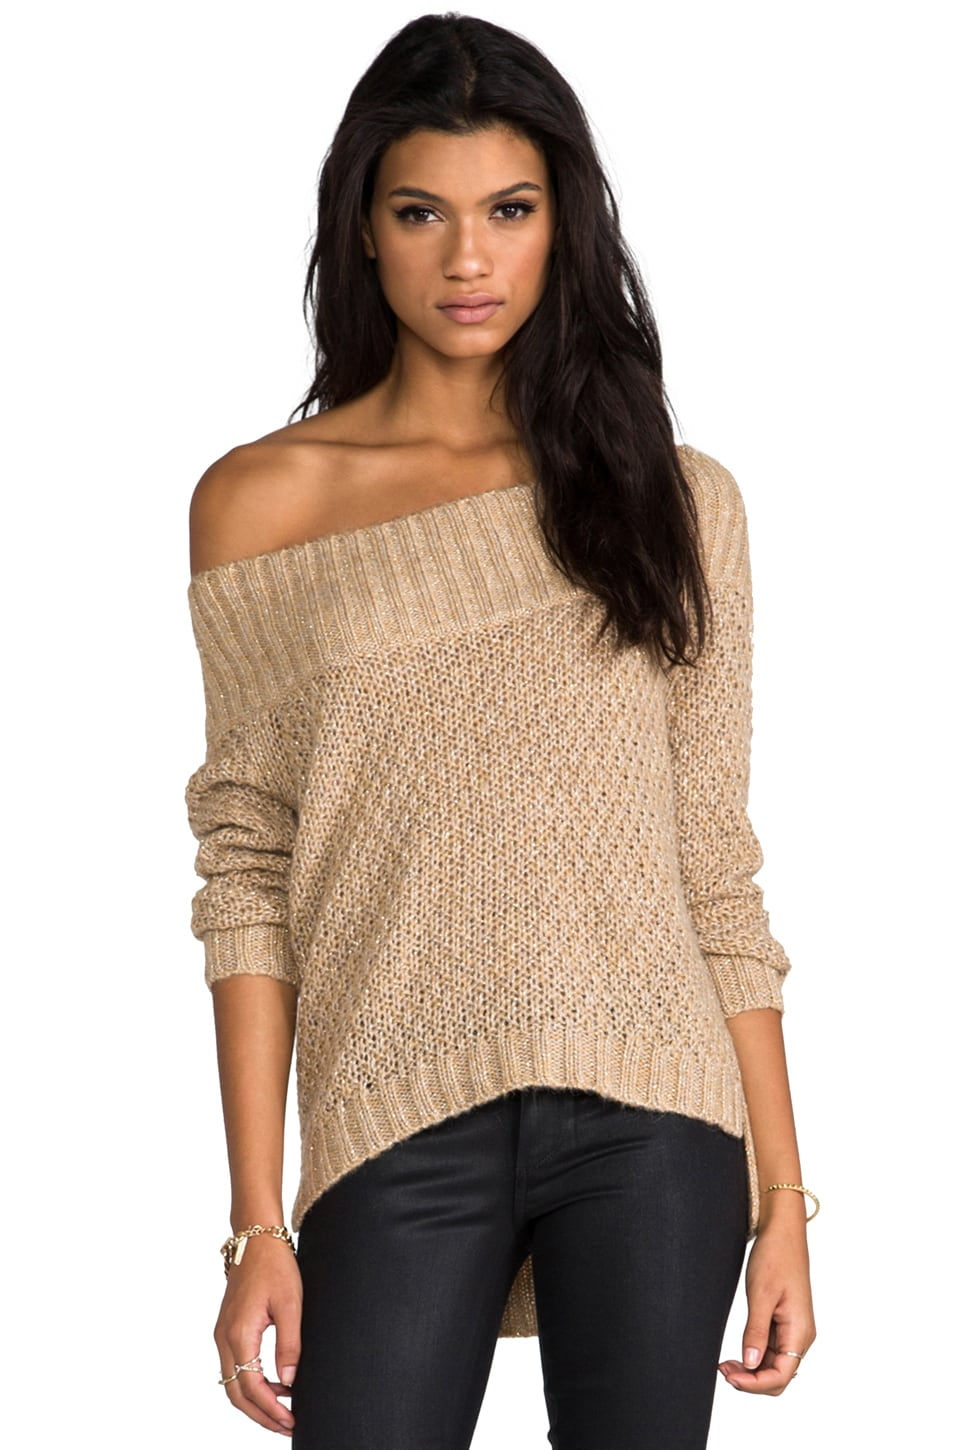 Juicy Couture Waffle Stitch Pullover Sweater in Bronze Sand